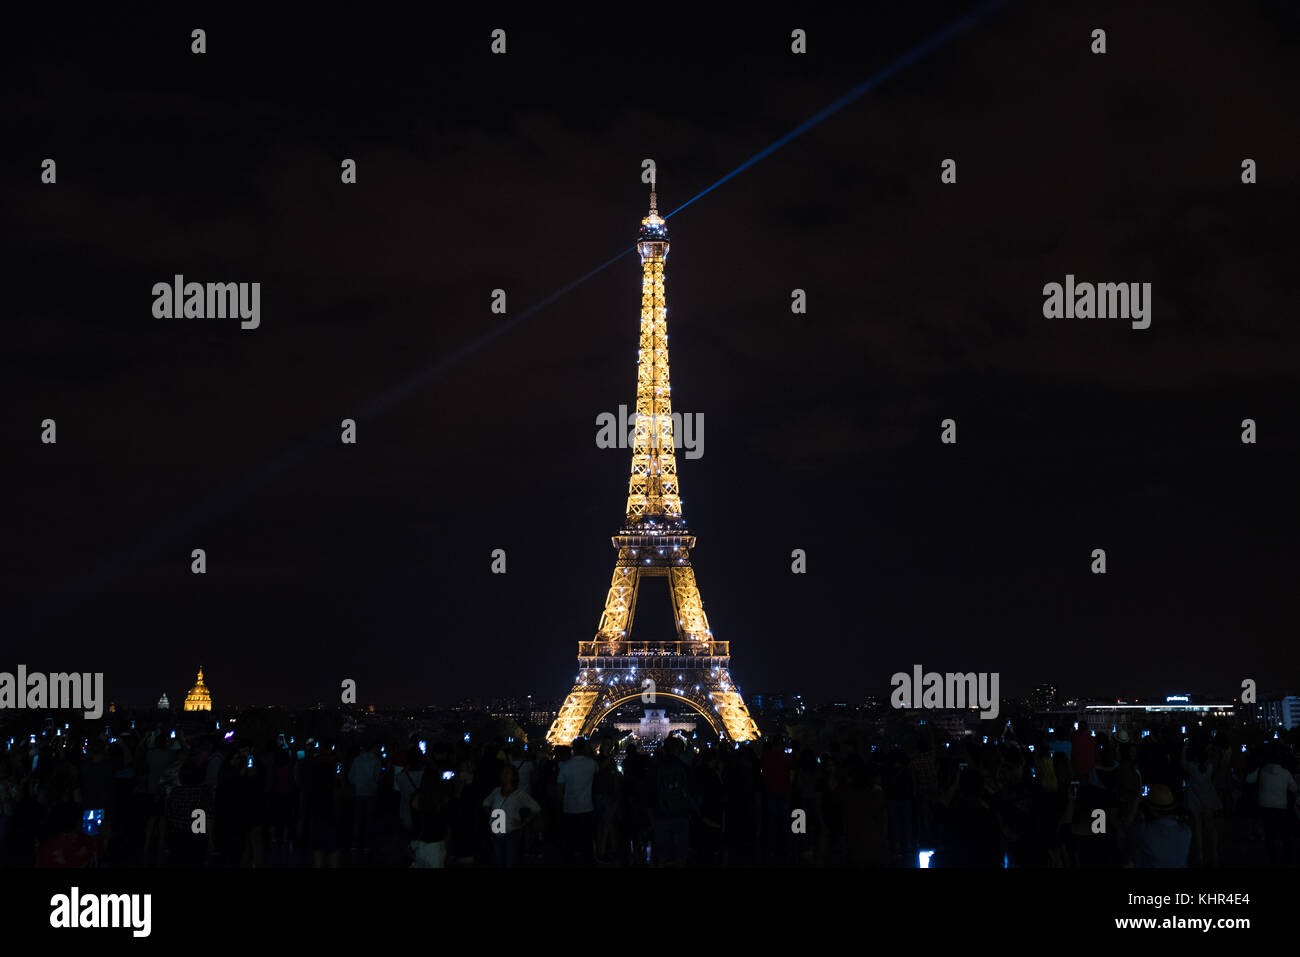 Miscellaneous images of Paris. Landmarks, tourist sights, buildings Stock Photo